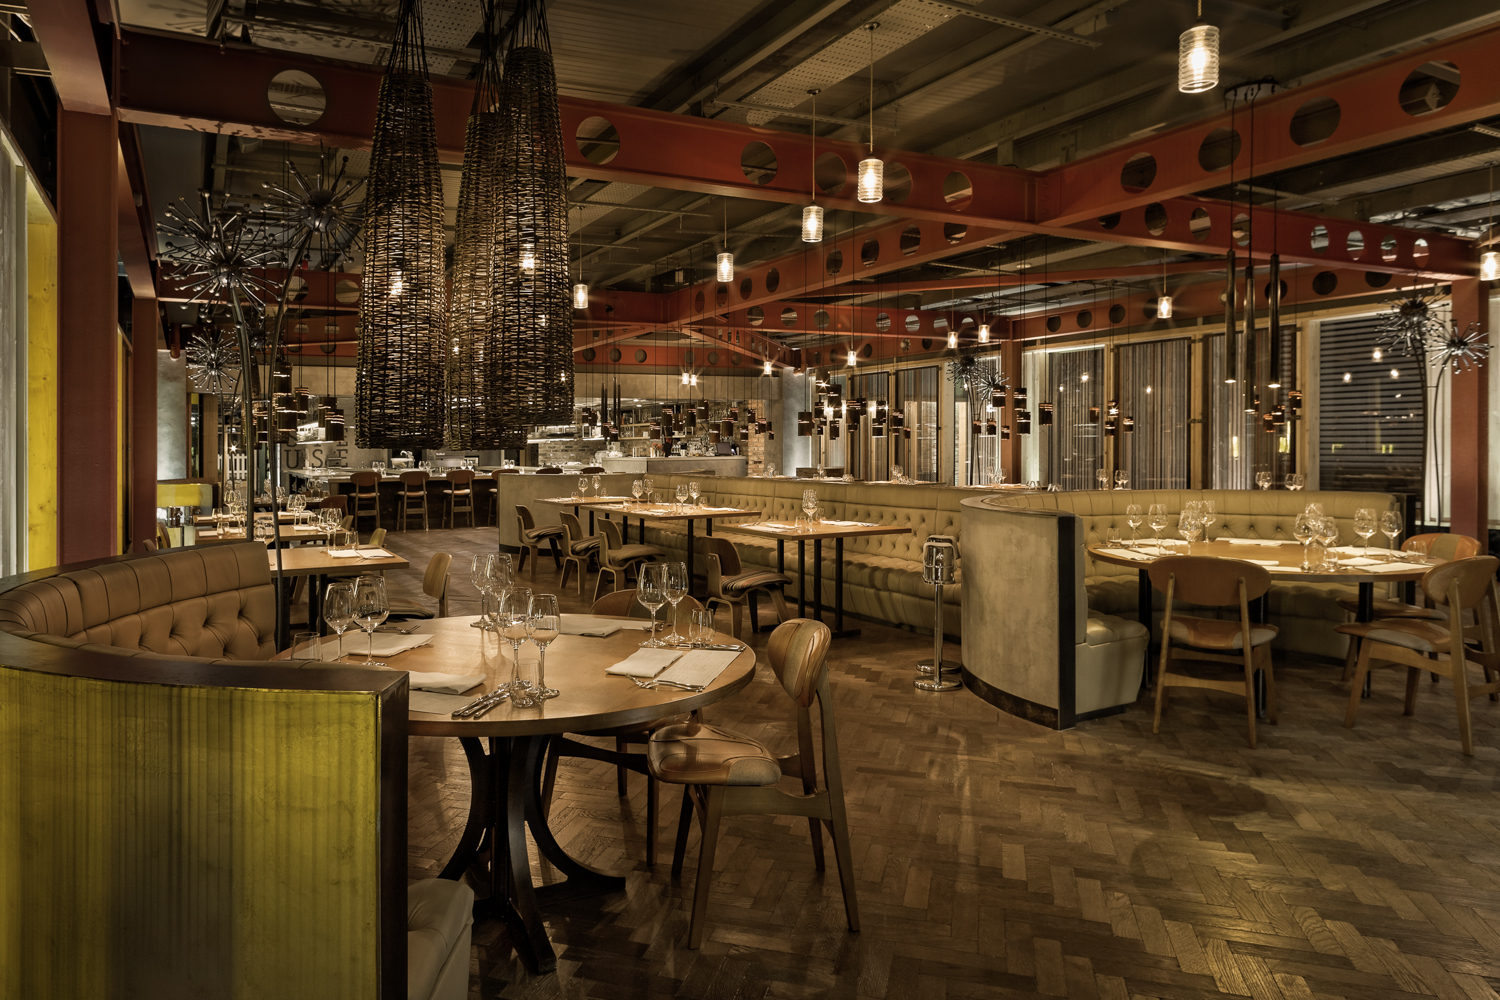 Manchester house and el gato negro star at national for Design manchester